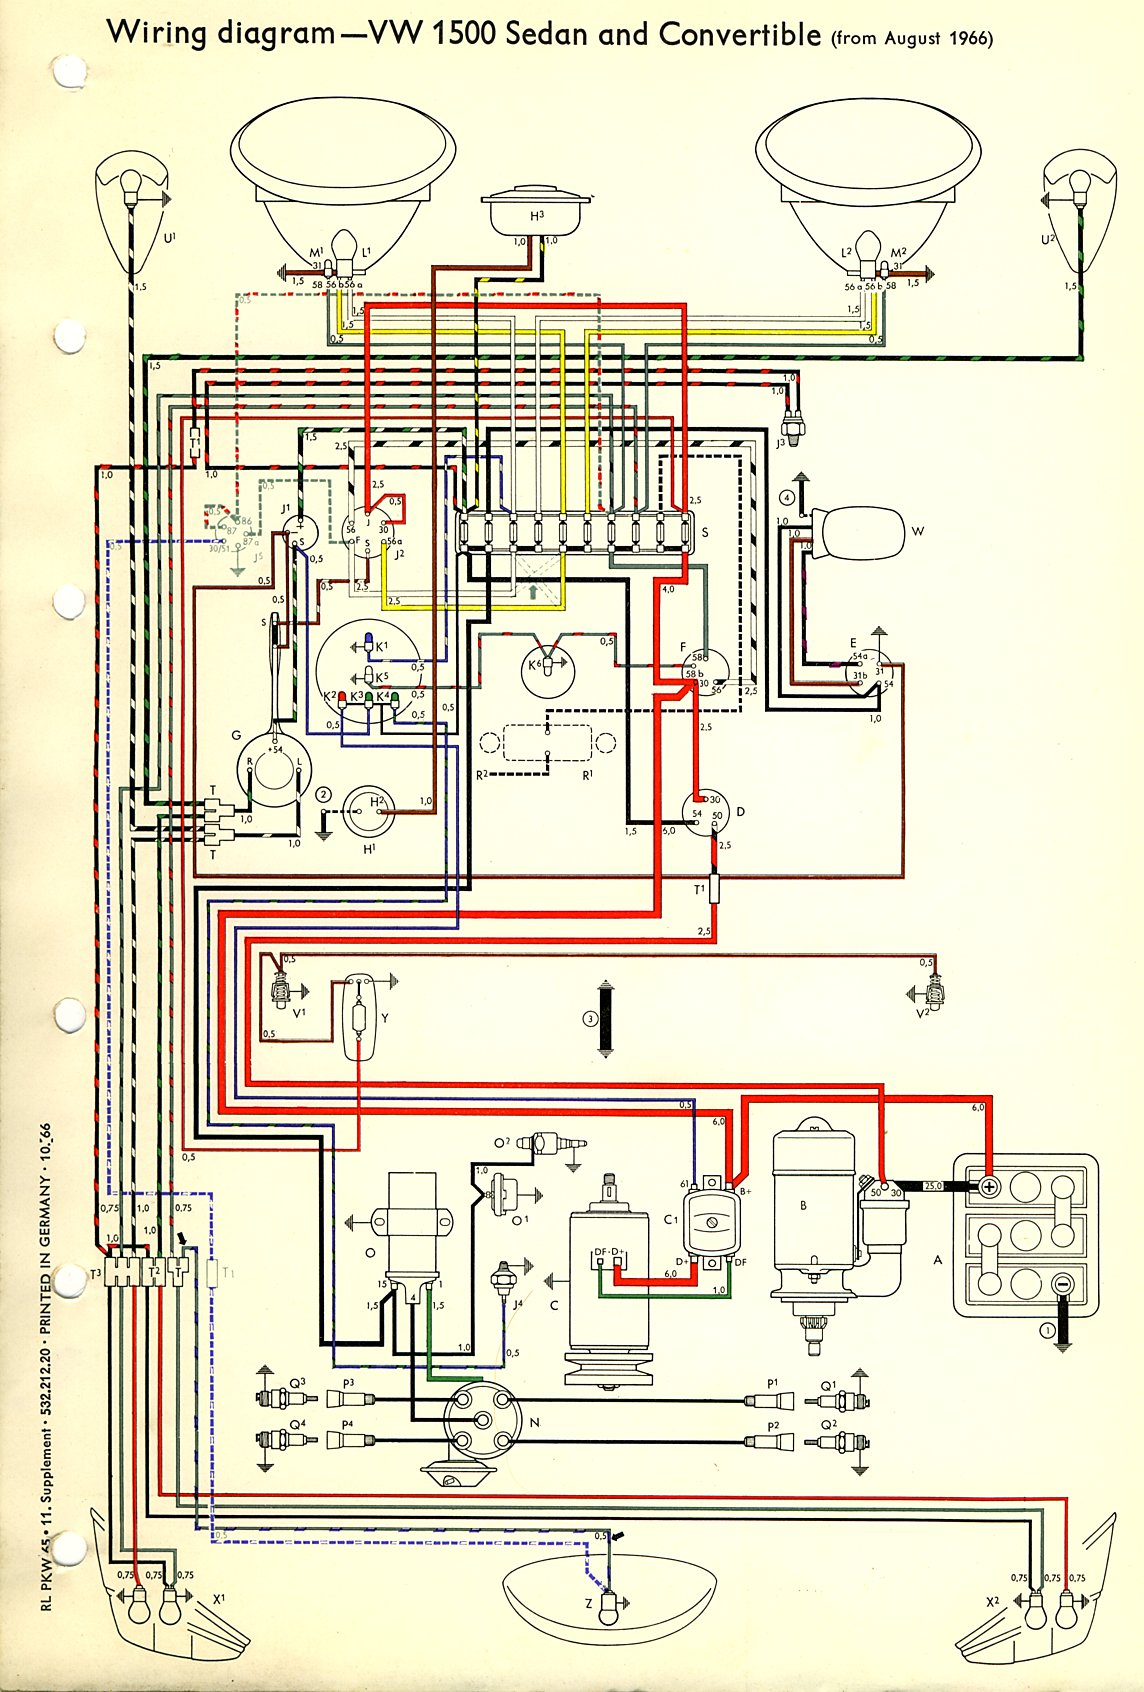 thesamba com type 1 wiring diagrams rh thesamba com vw beetle wiring diagram 1972 vw beetle wiring diagram 1974